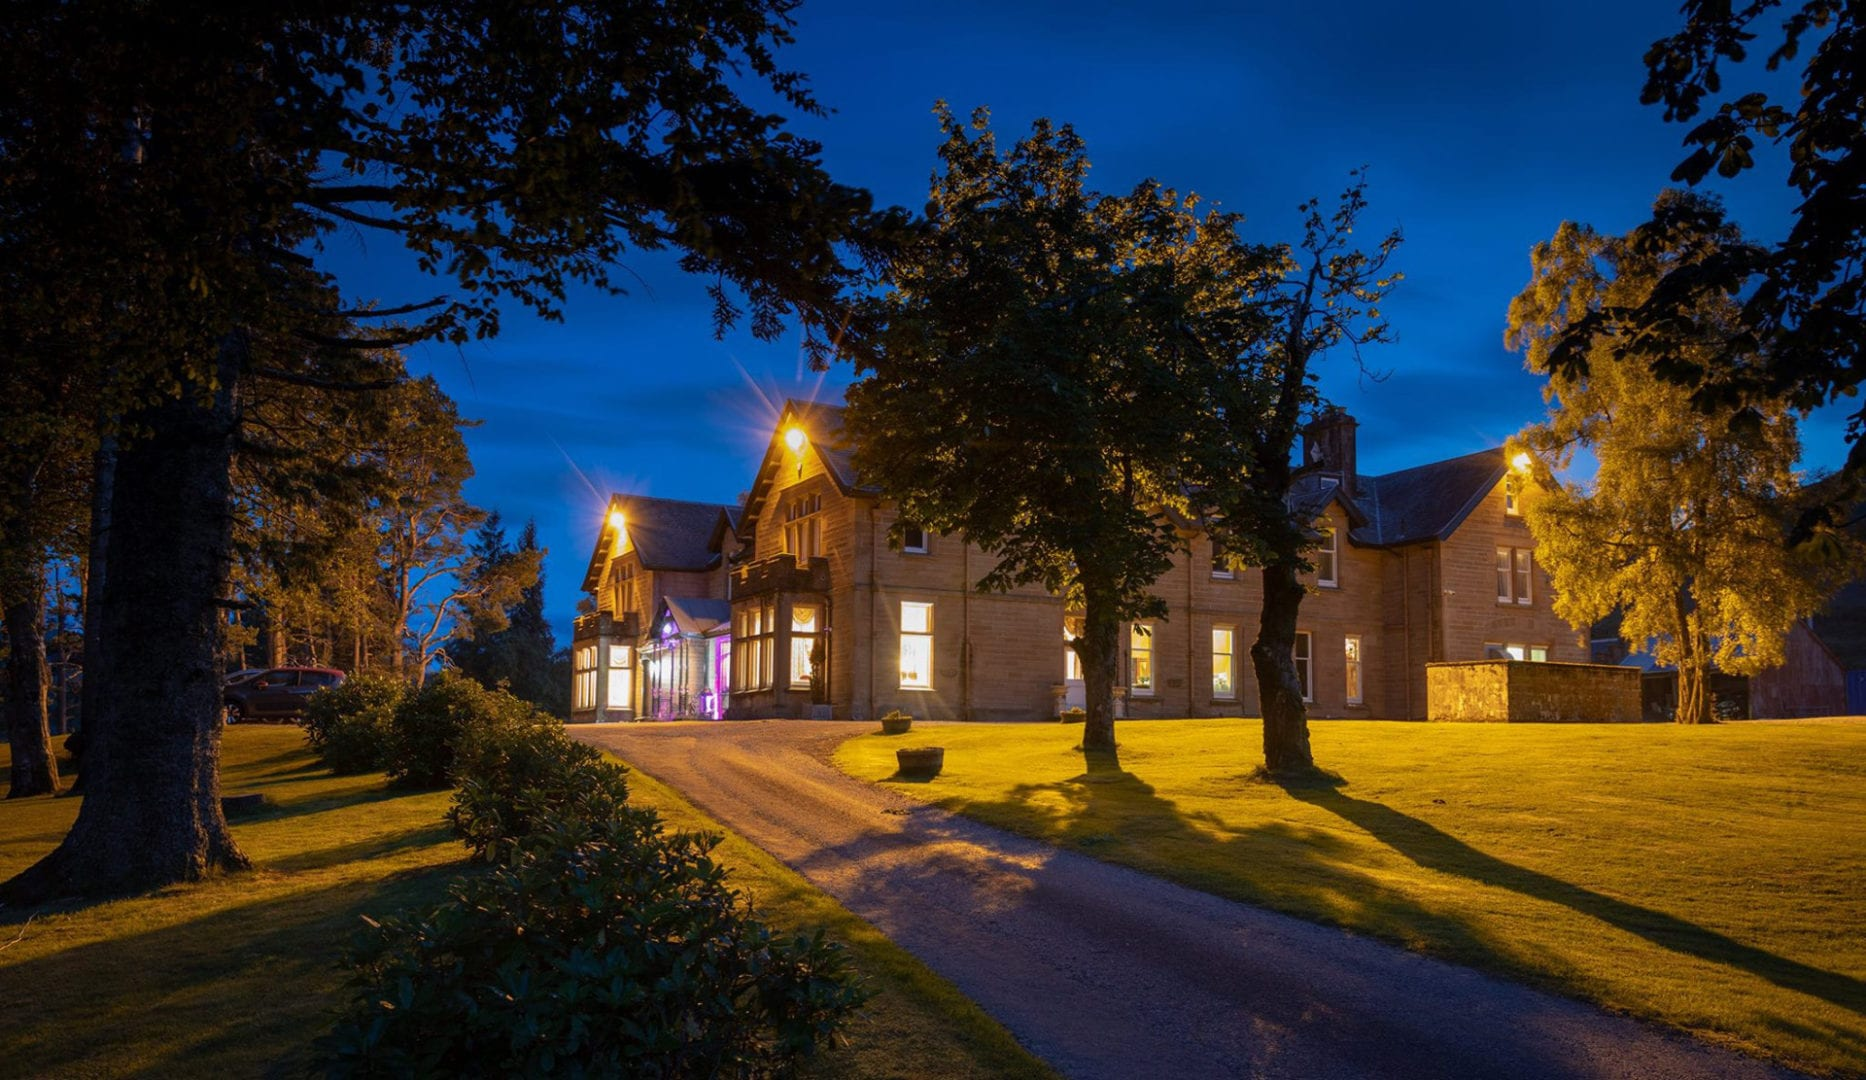 Ledgowan Lodge Hotel & Bunkhouse Ross-shire